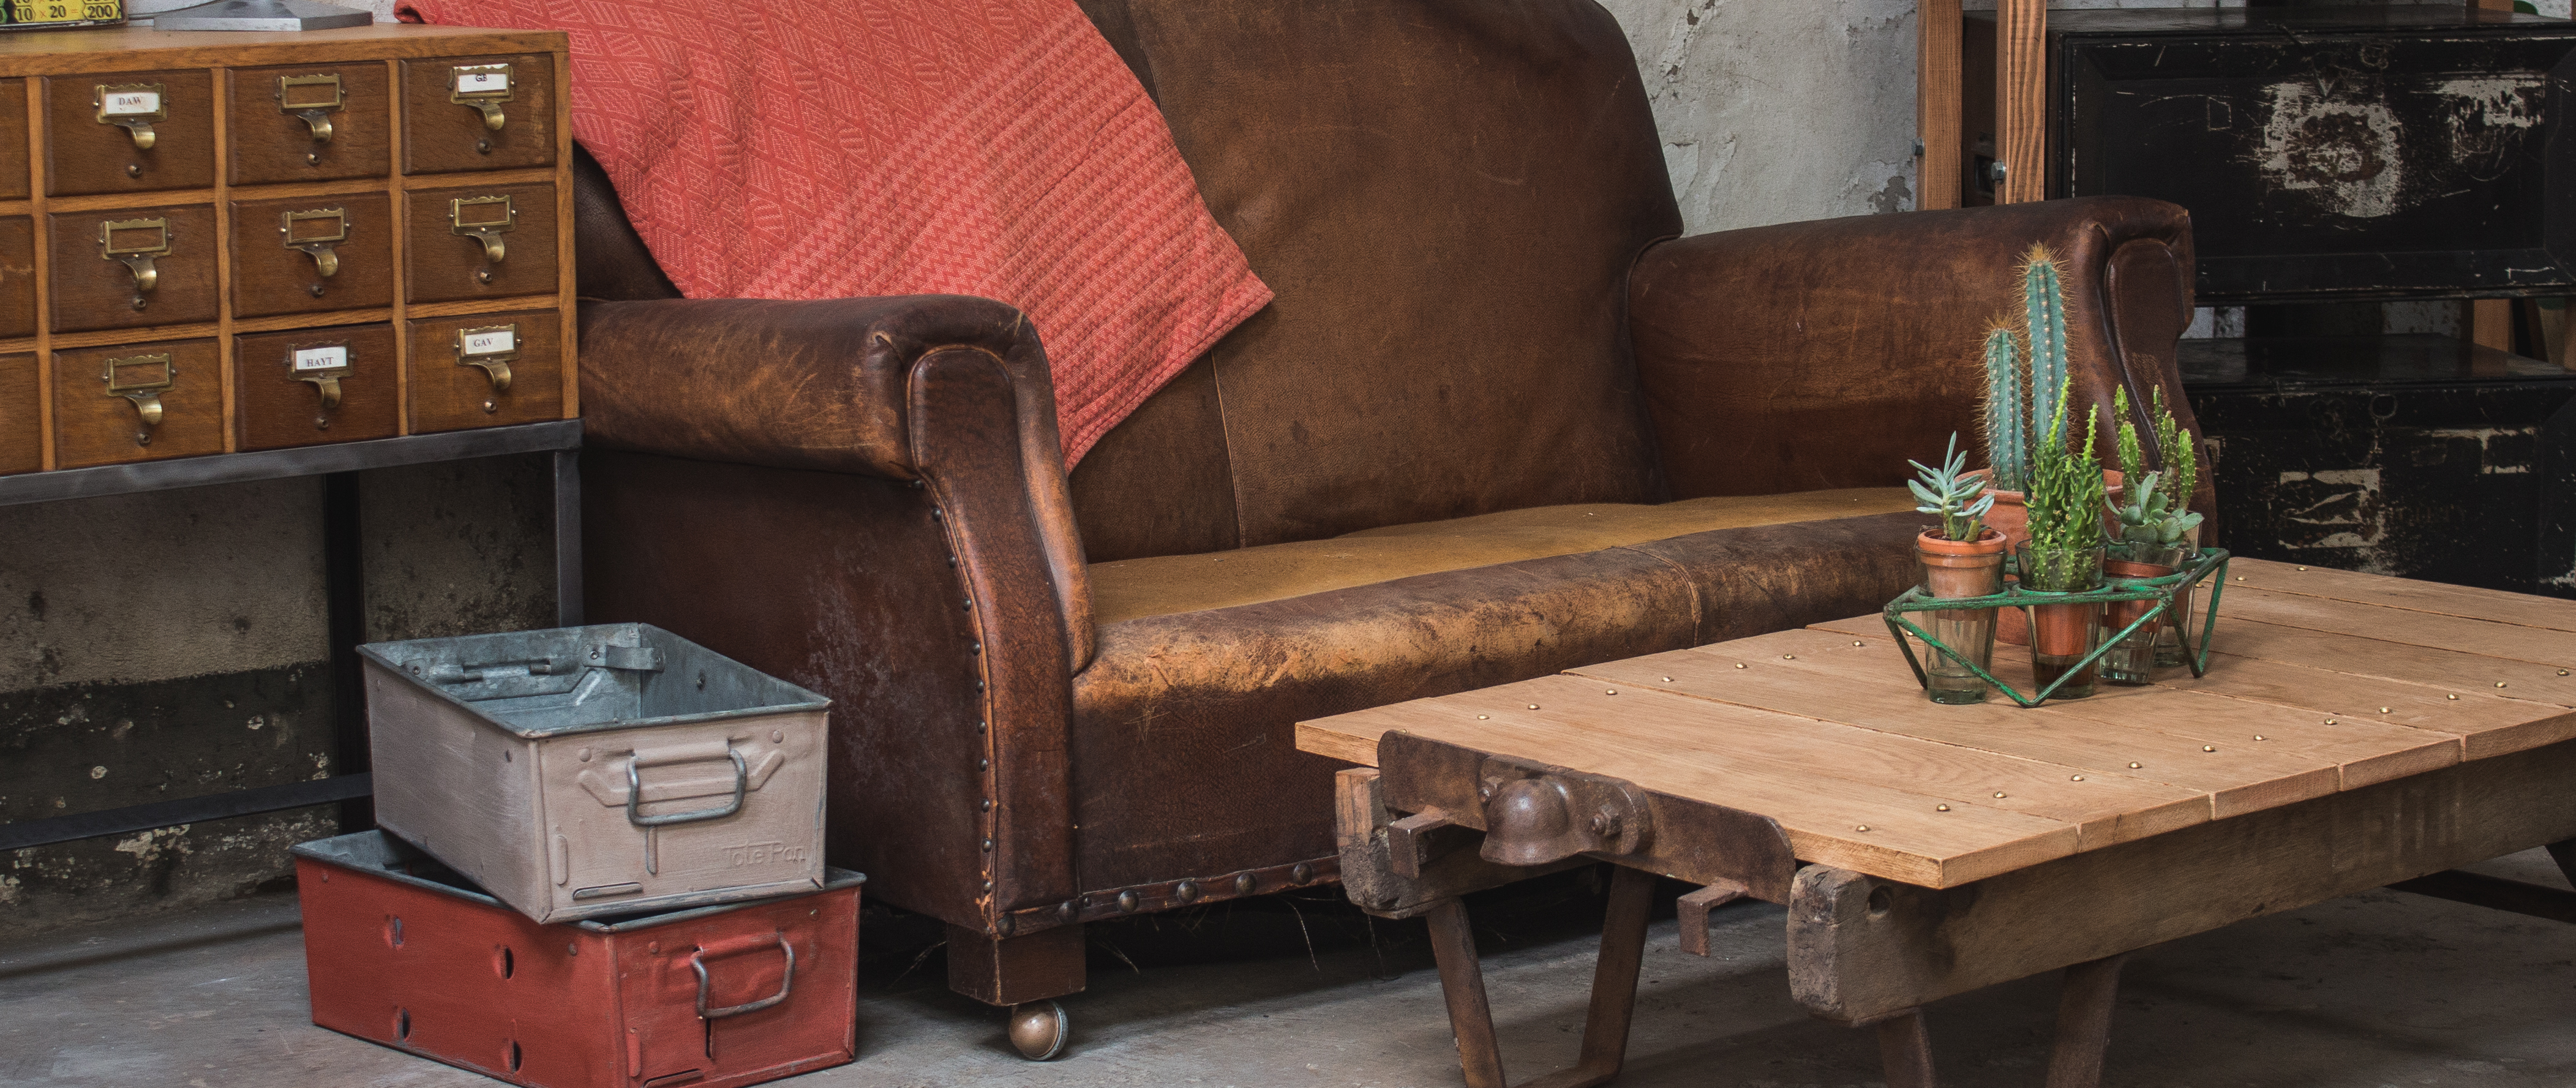 Furniture Store Interior Design Hayward Ca ~ Industrial interior design style for homes by scaramanga